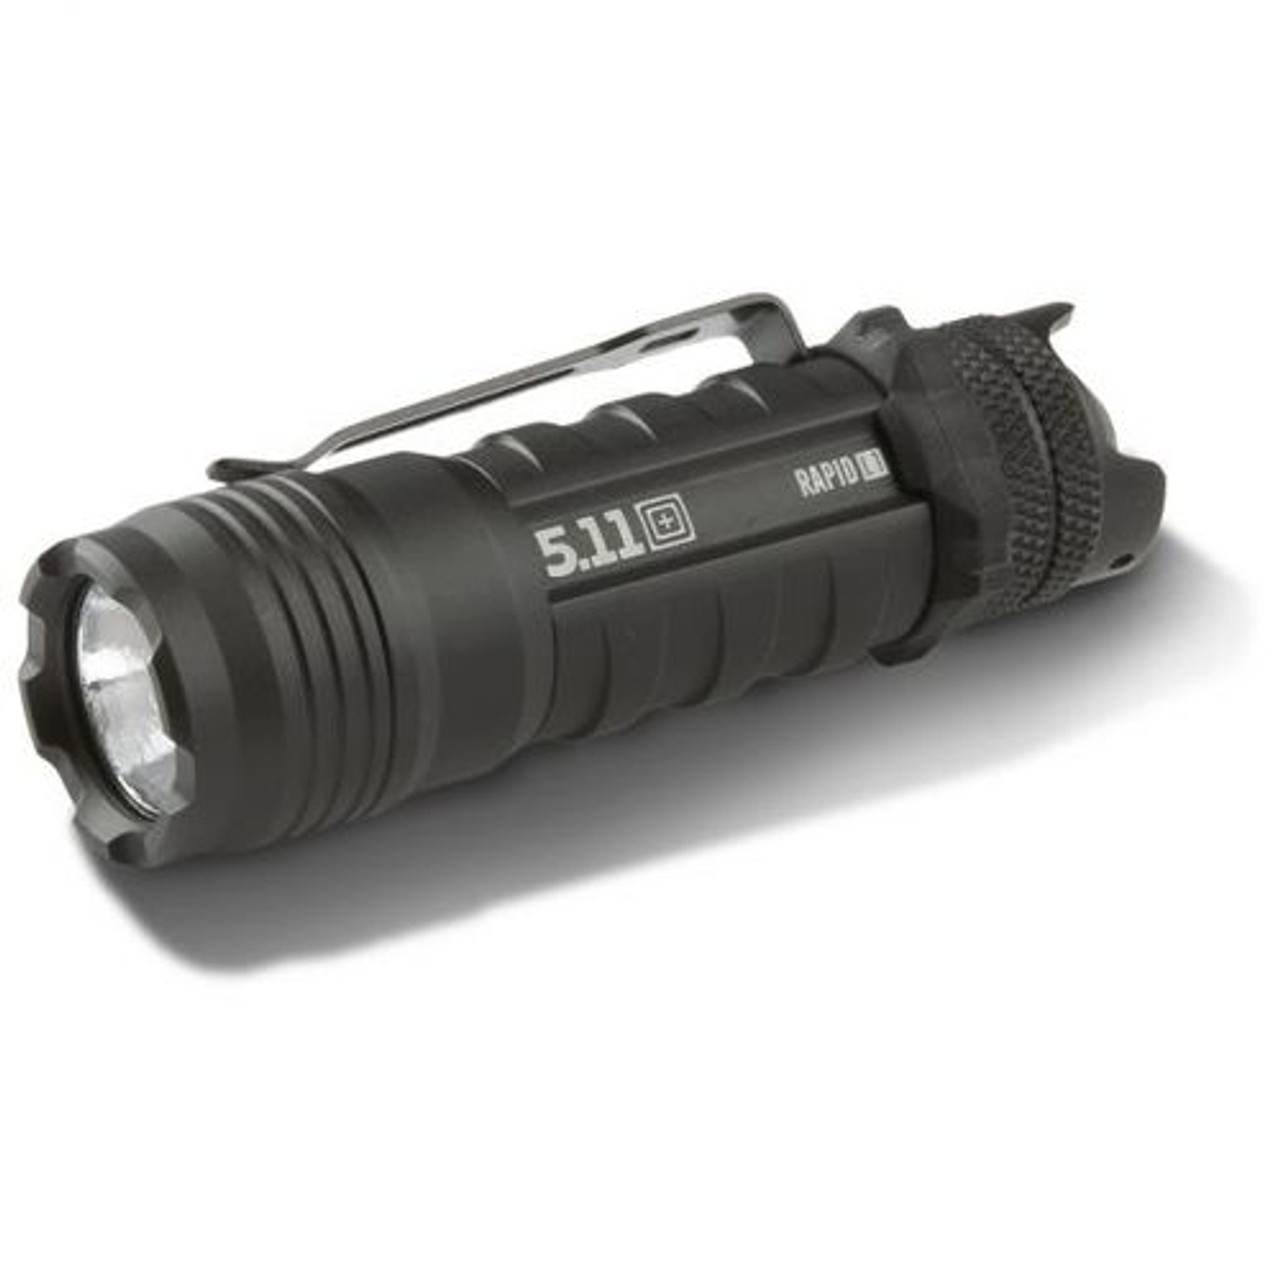 5.11 Tactical Rapid L1 Flashlight, 290 Lumens 53390